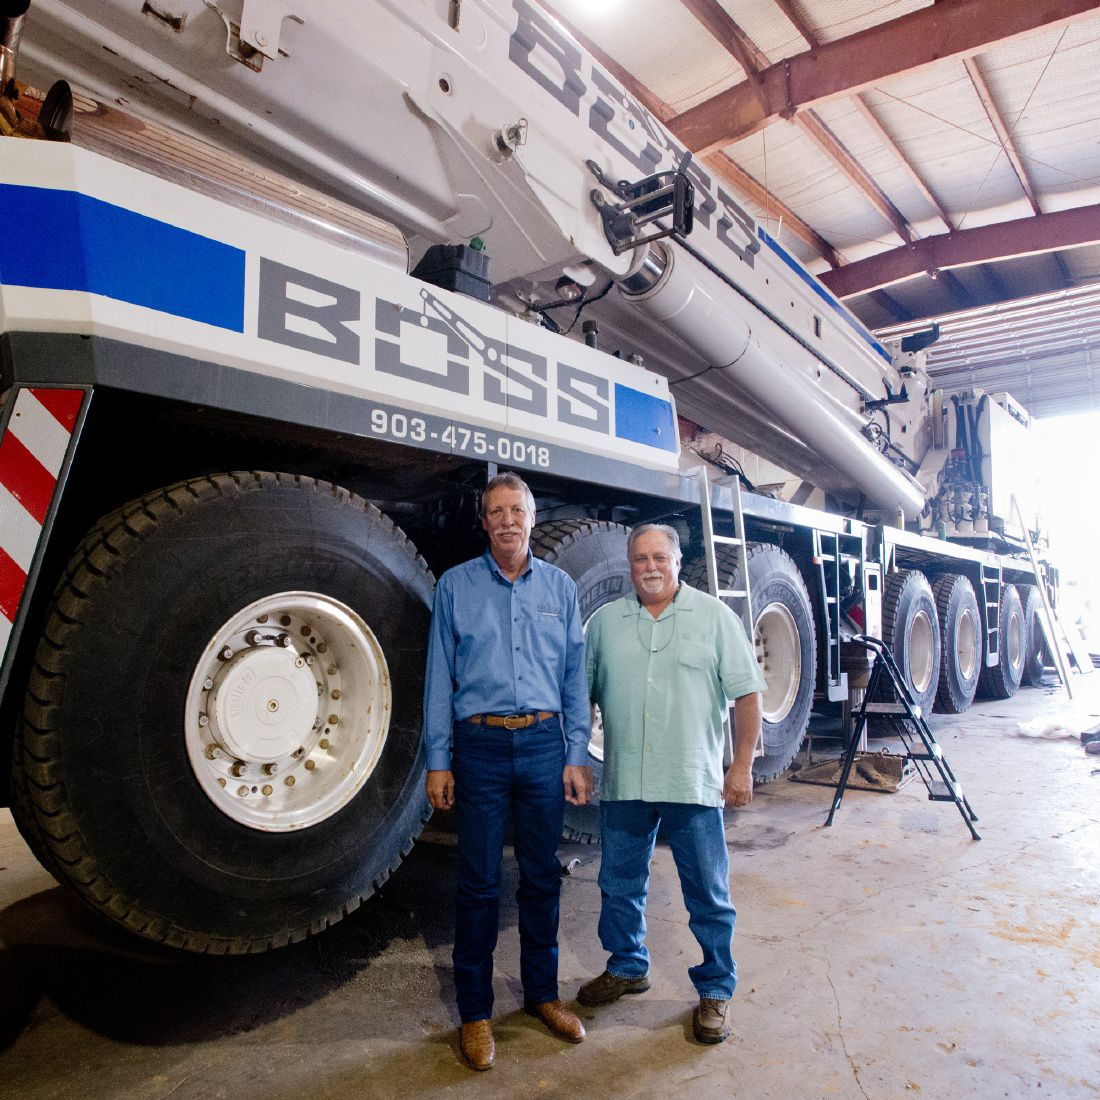 BOSS Crane outgrows 2-year-old headquarters, sets sights on expansion